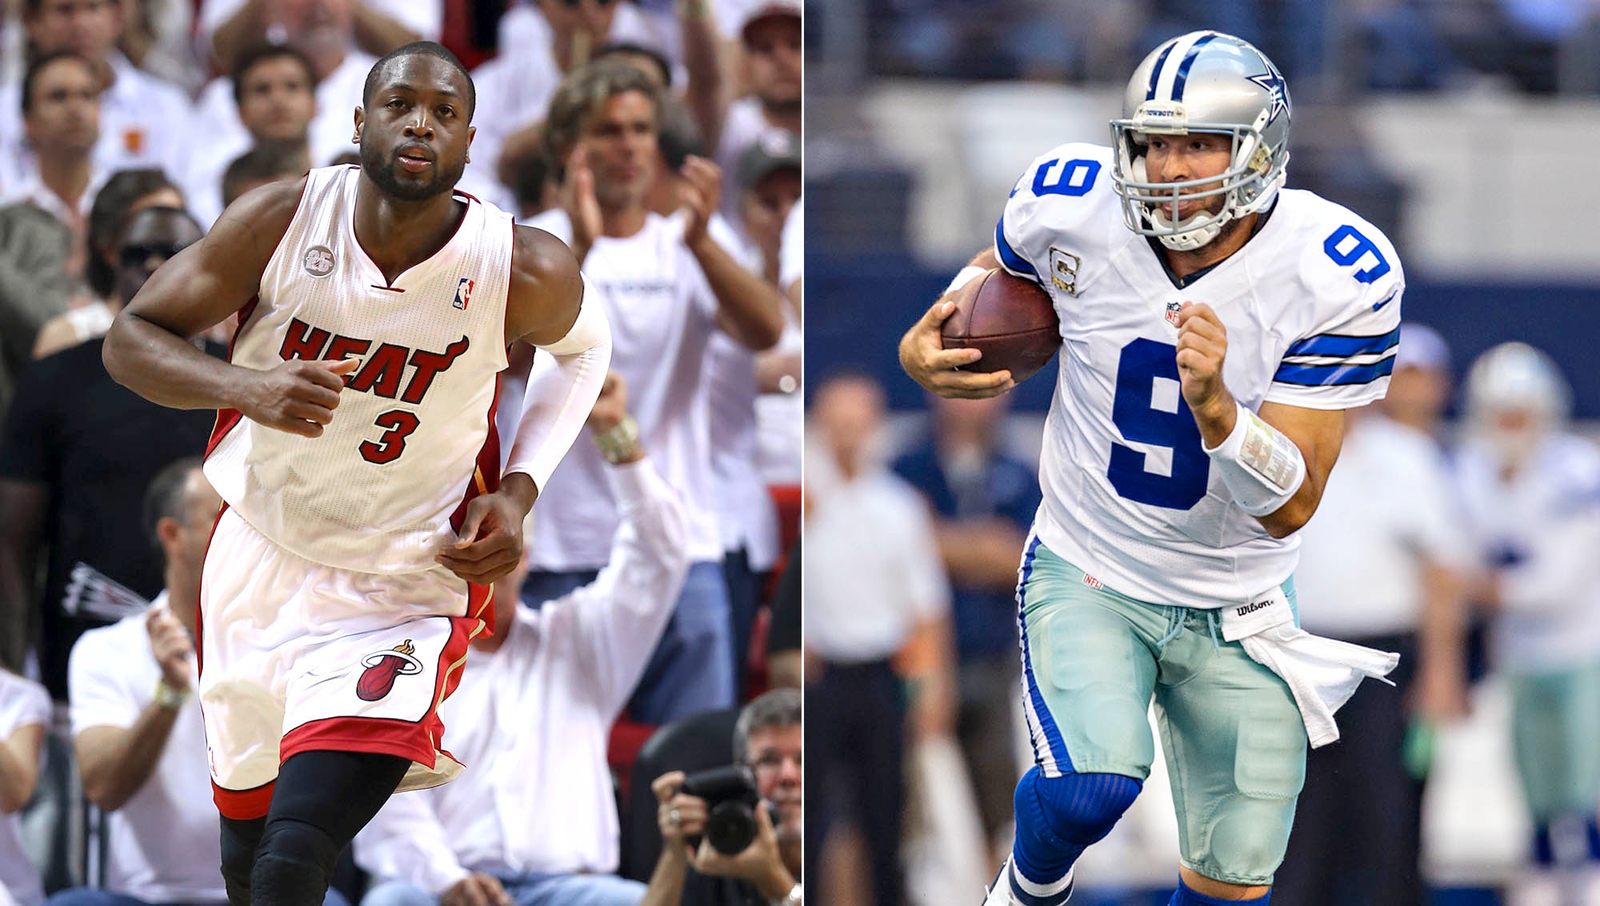 Report: Running To Factor Greatly In This Week's Sports